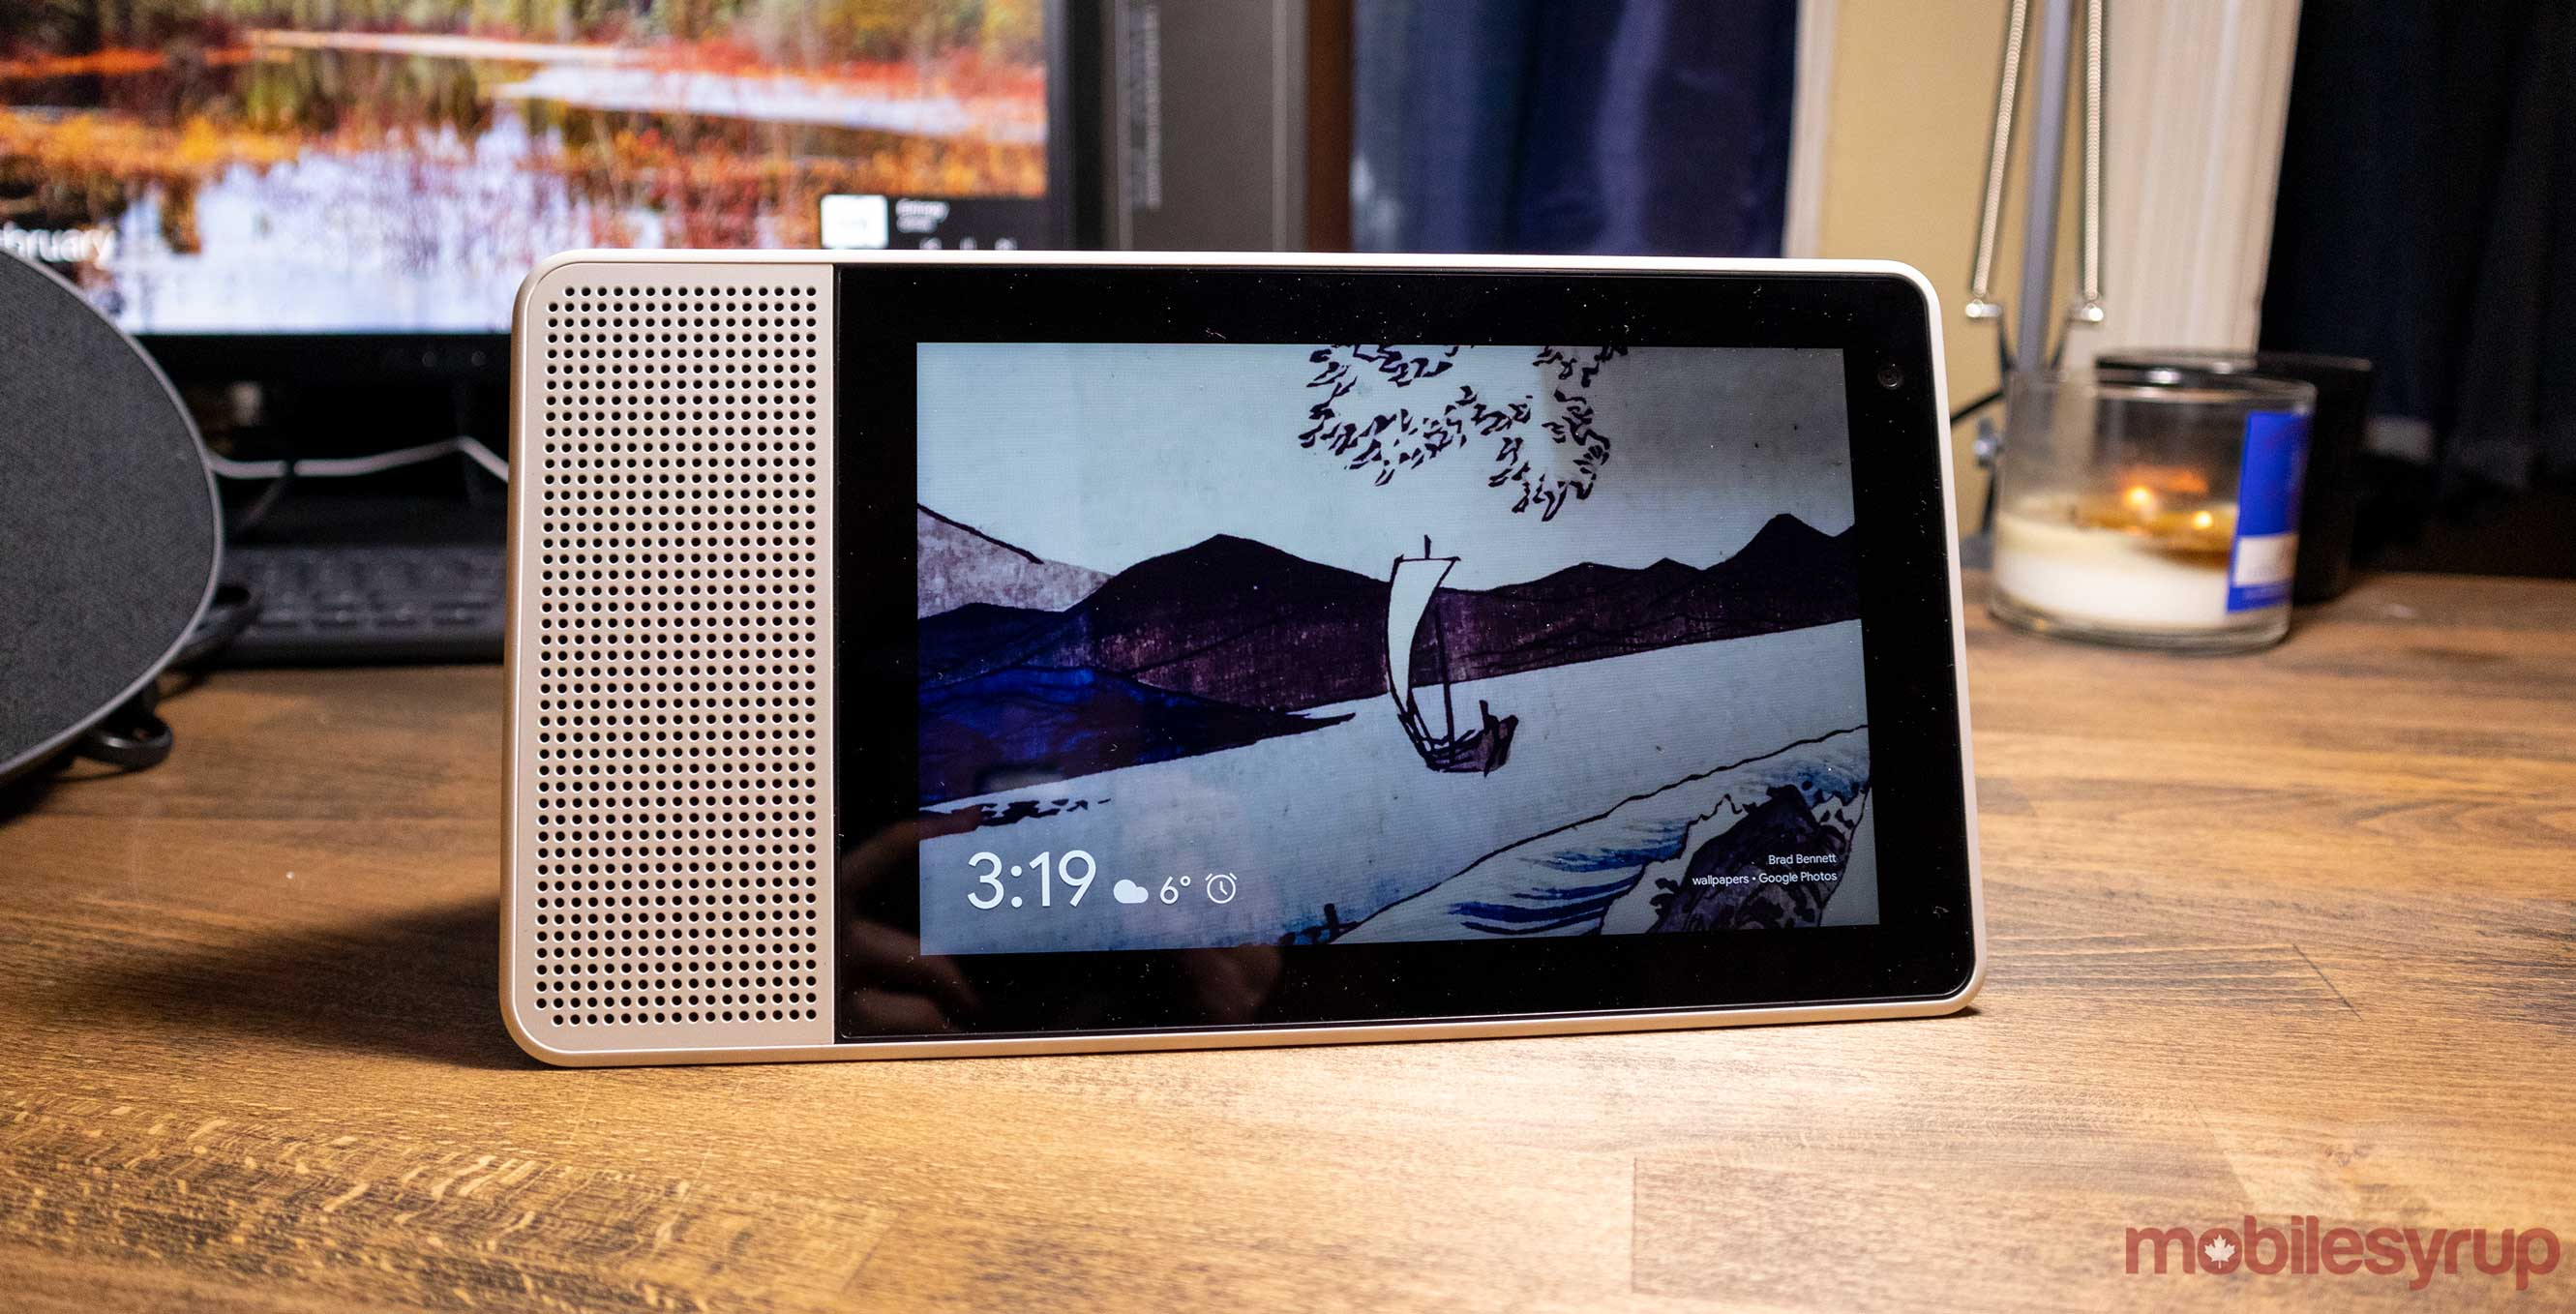 Best Buy and The Brick selling Lenovo Smart Display with Google Assistant for $129